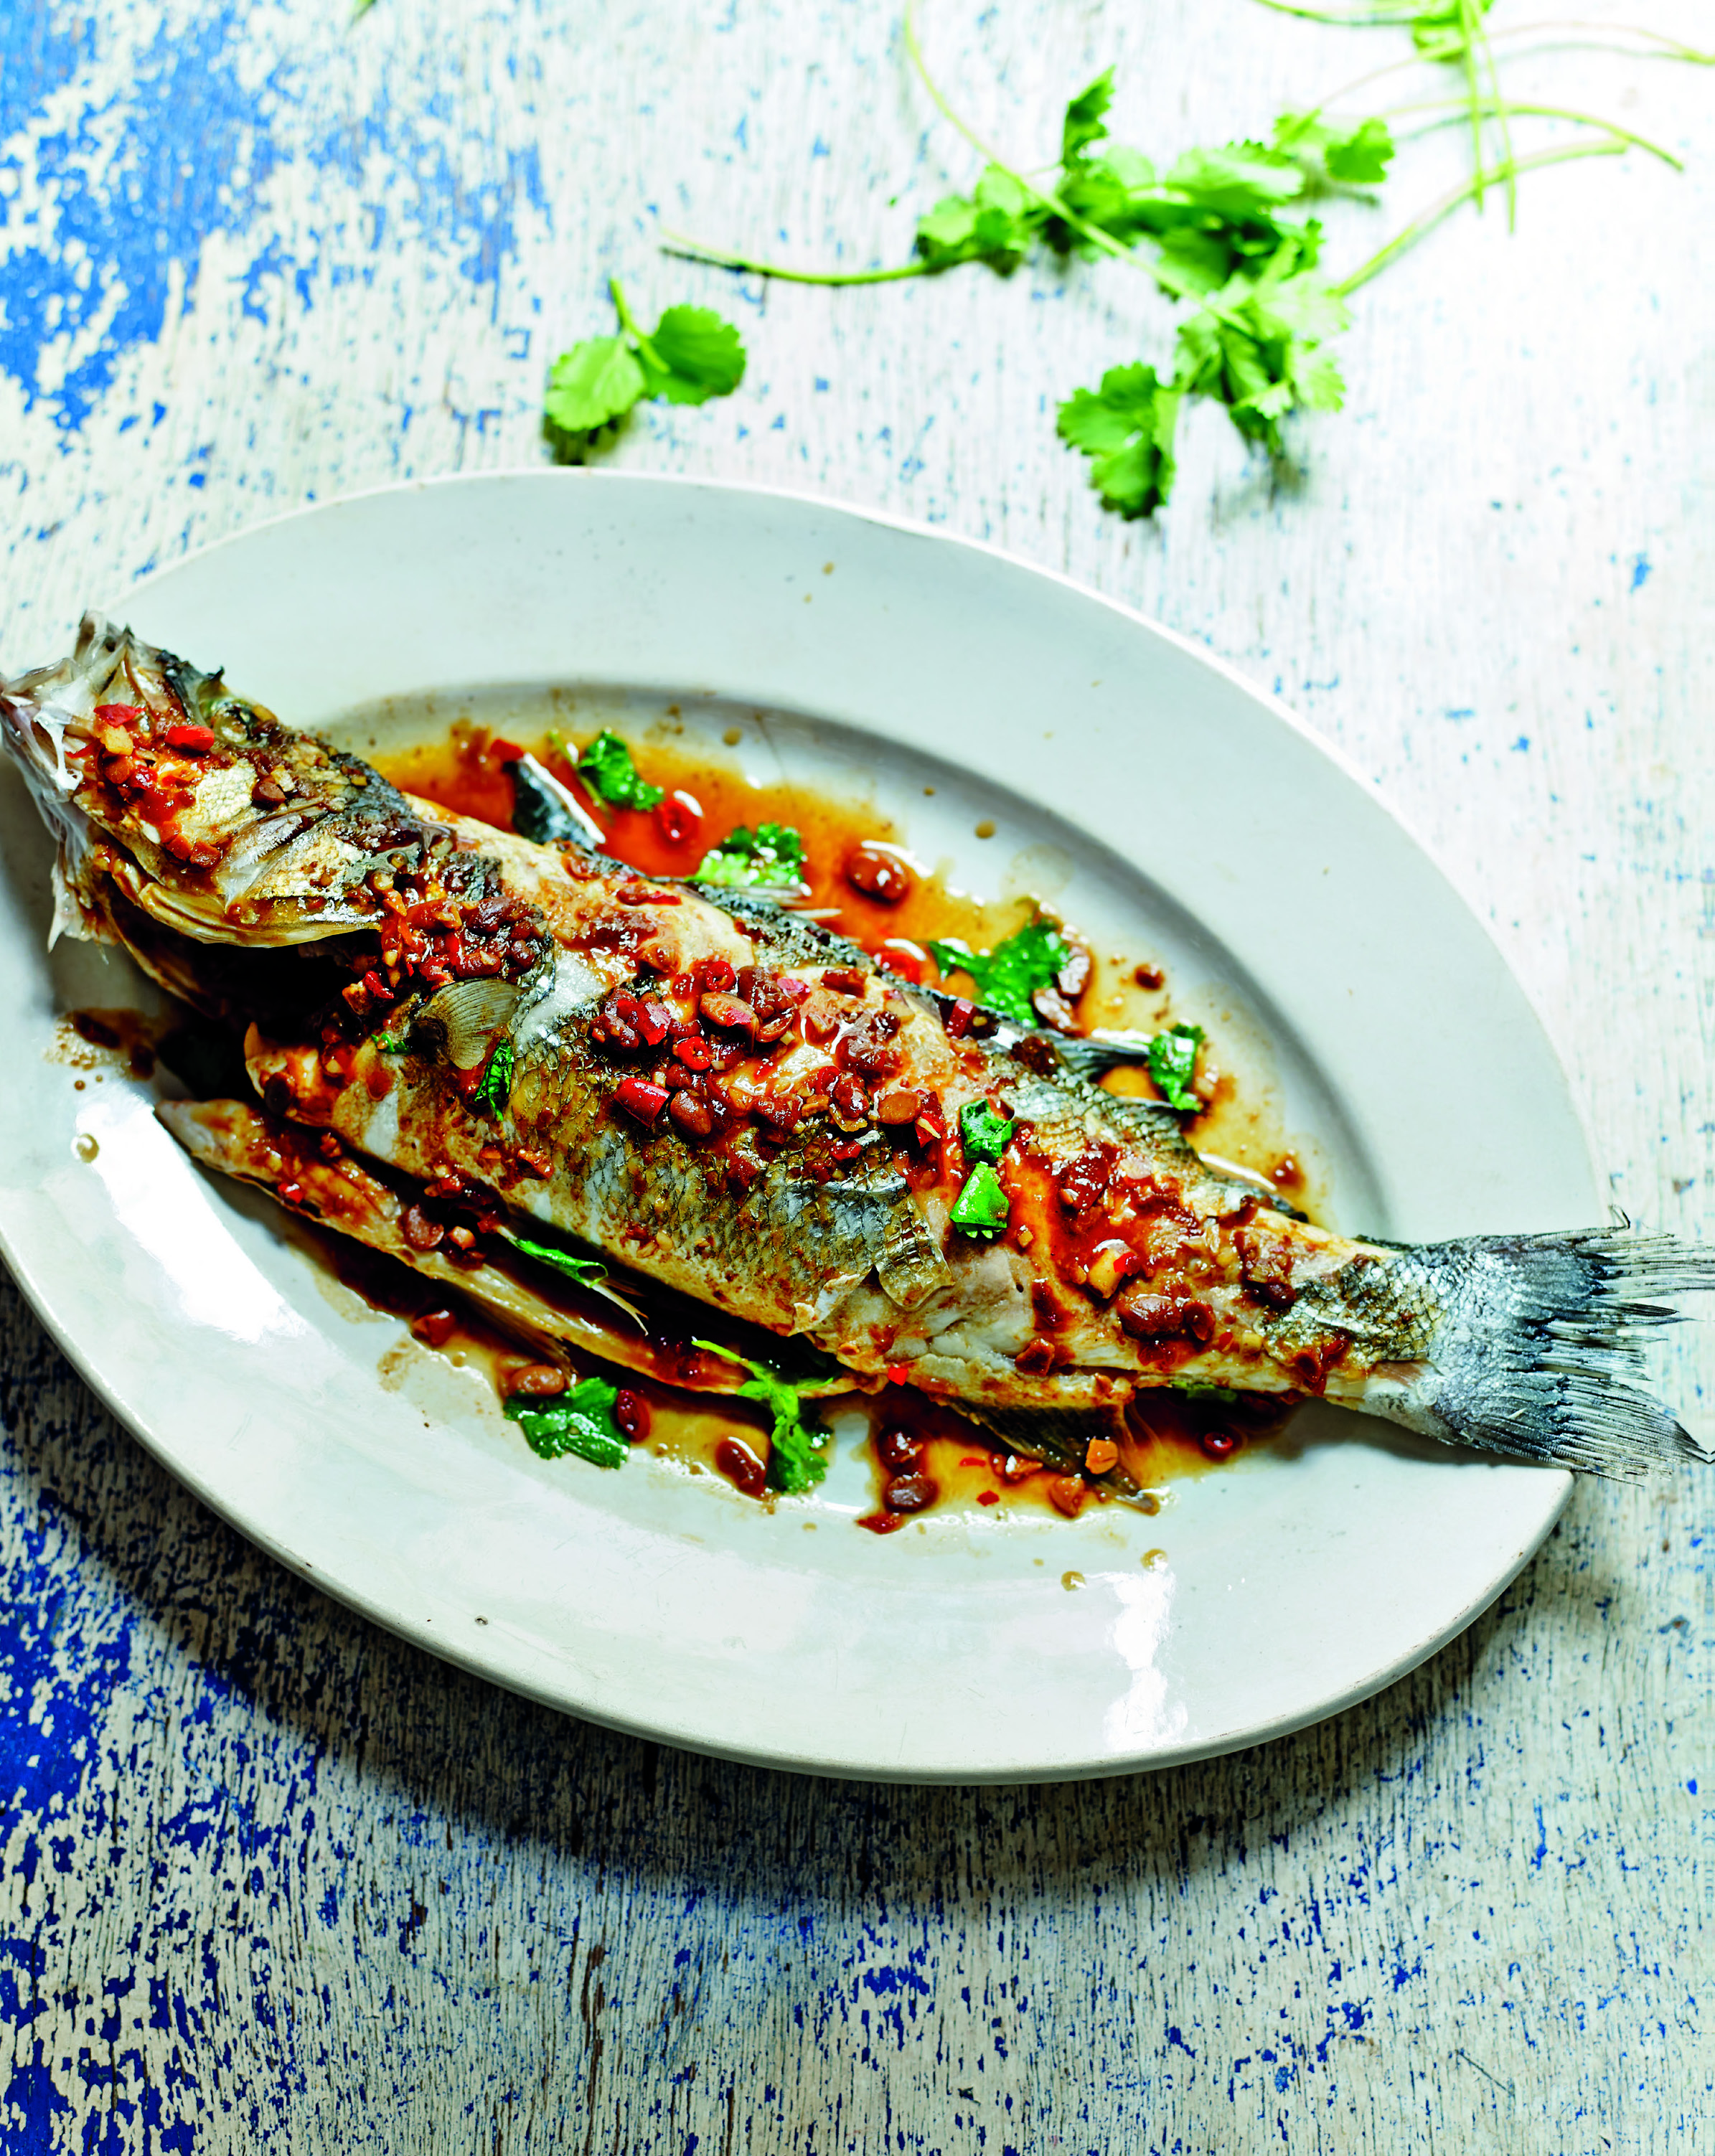 Sea bass with crushed soybeans and chilli sauce